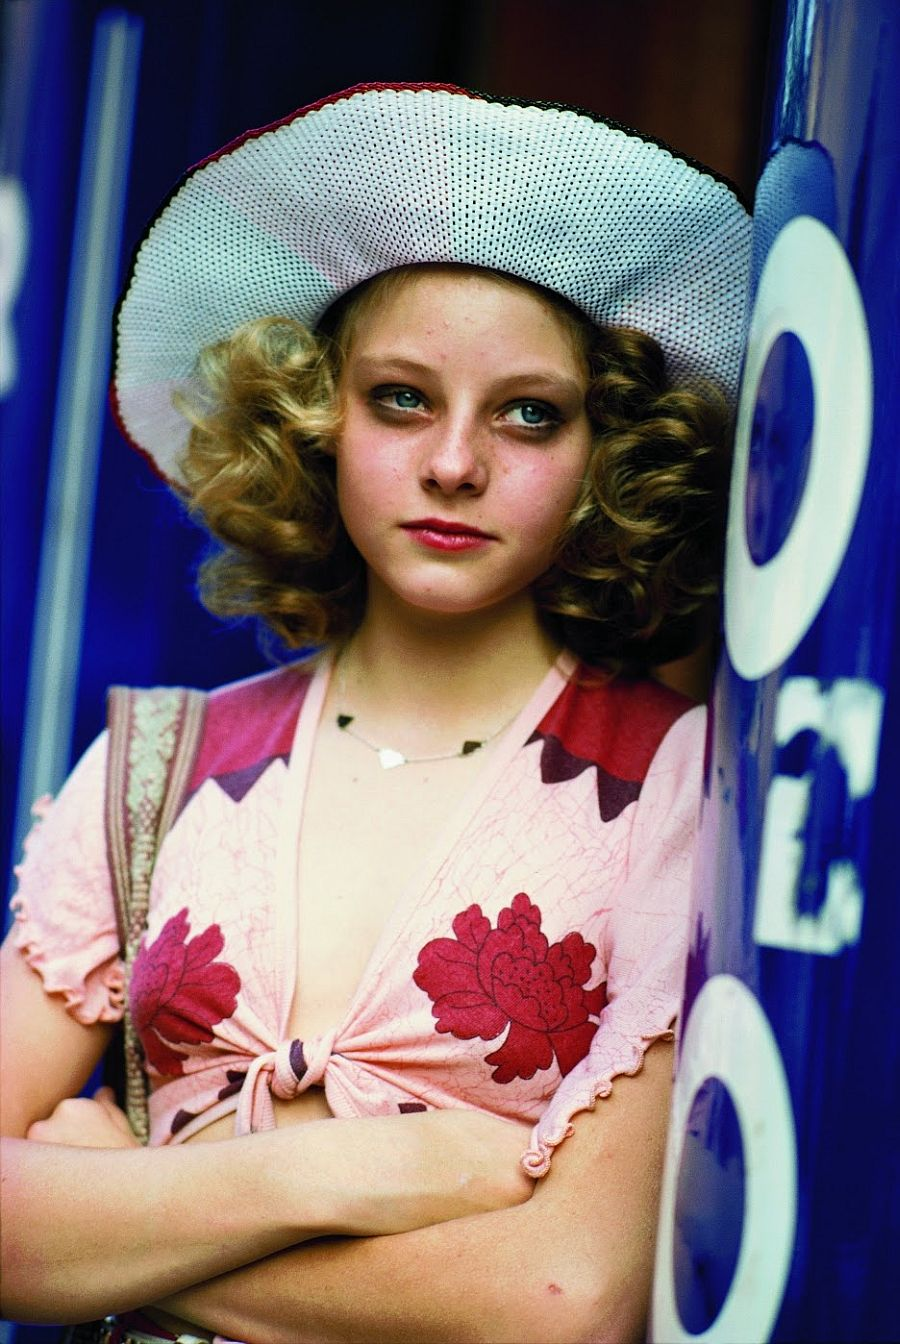 behind-the-scenes-jodie-foster-on-the-set-of-taxi-driver-1976-10